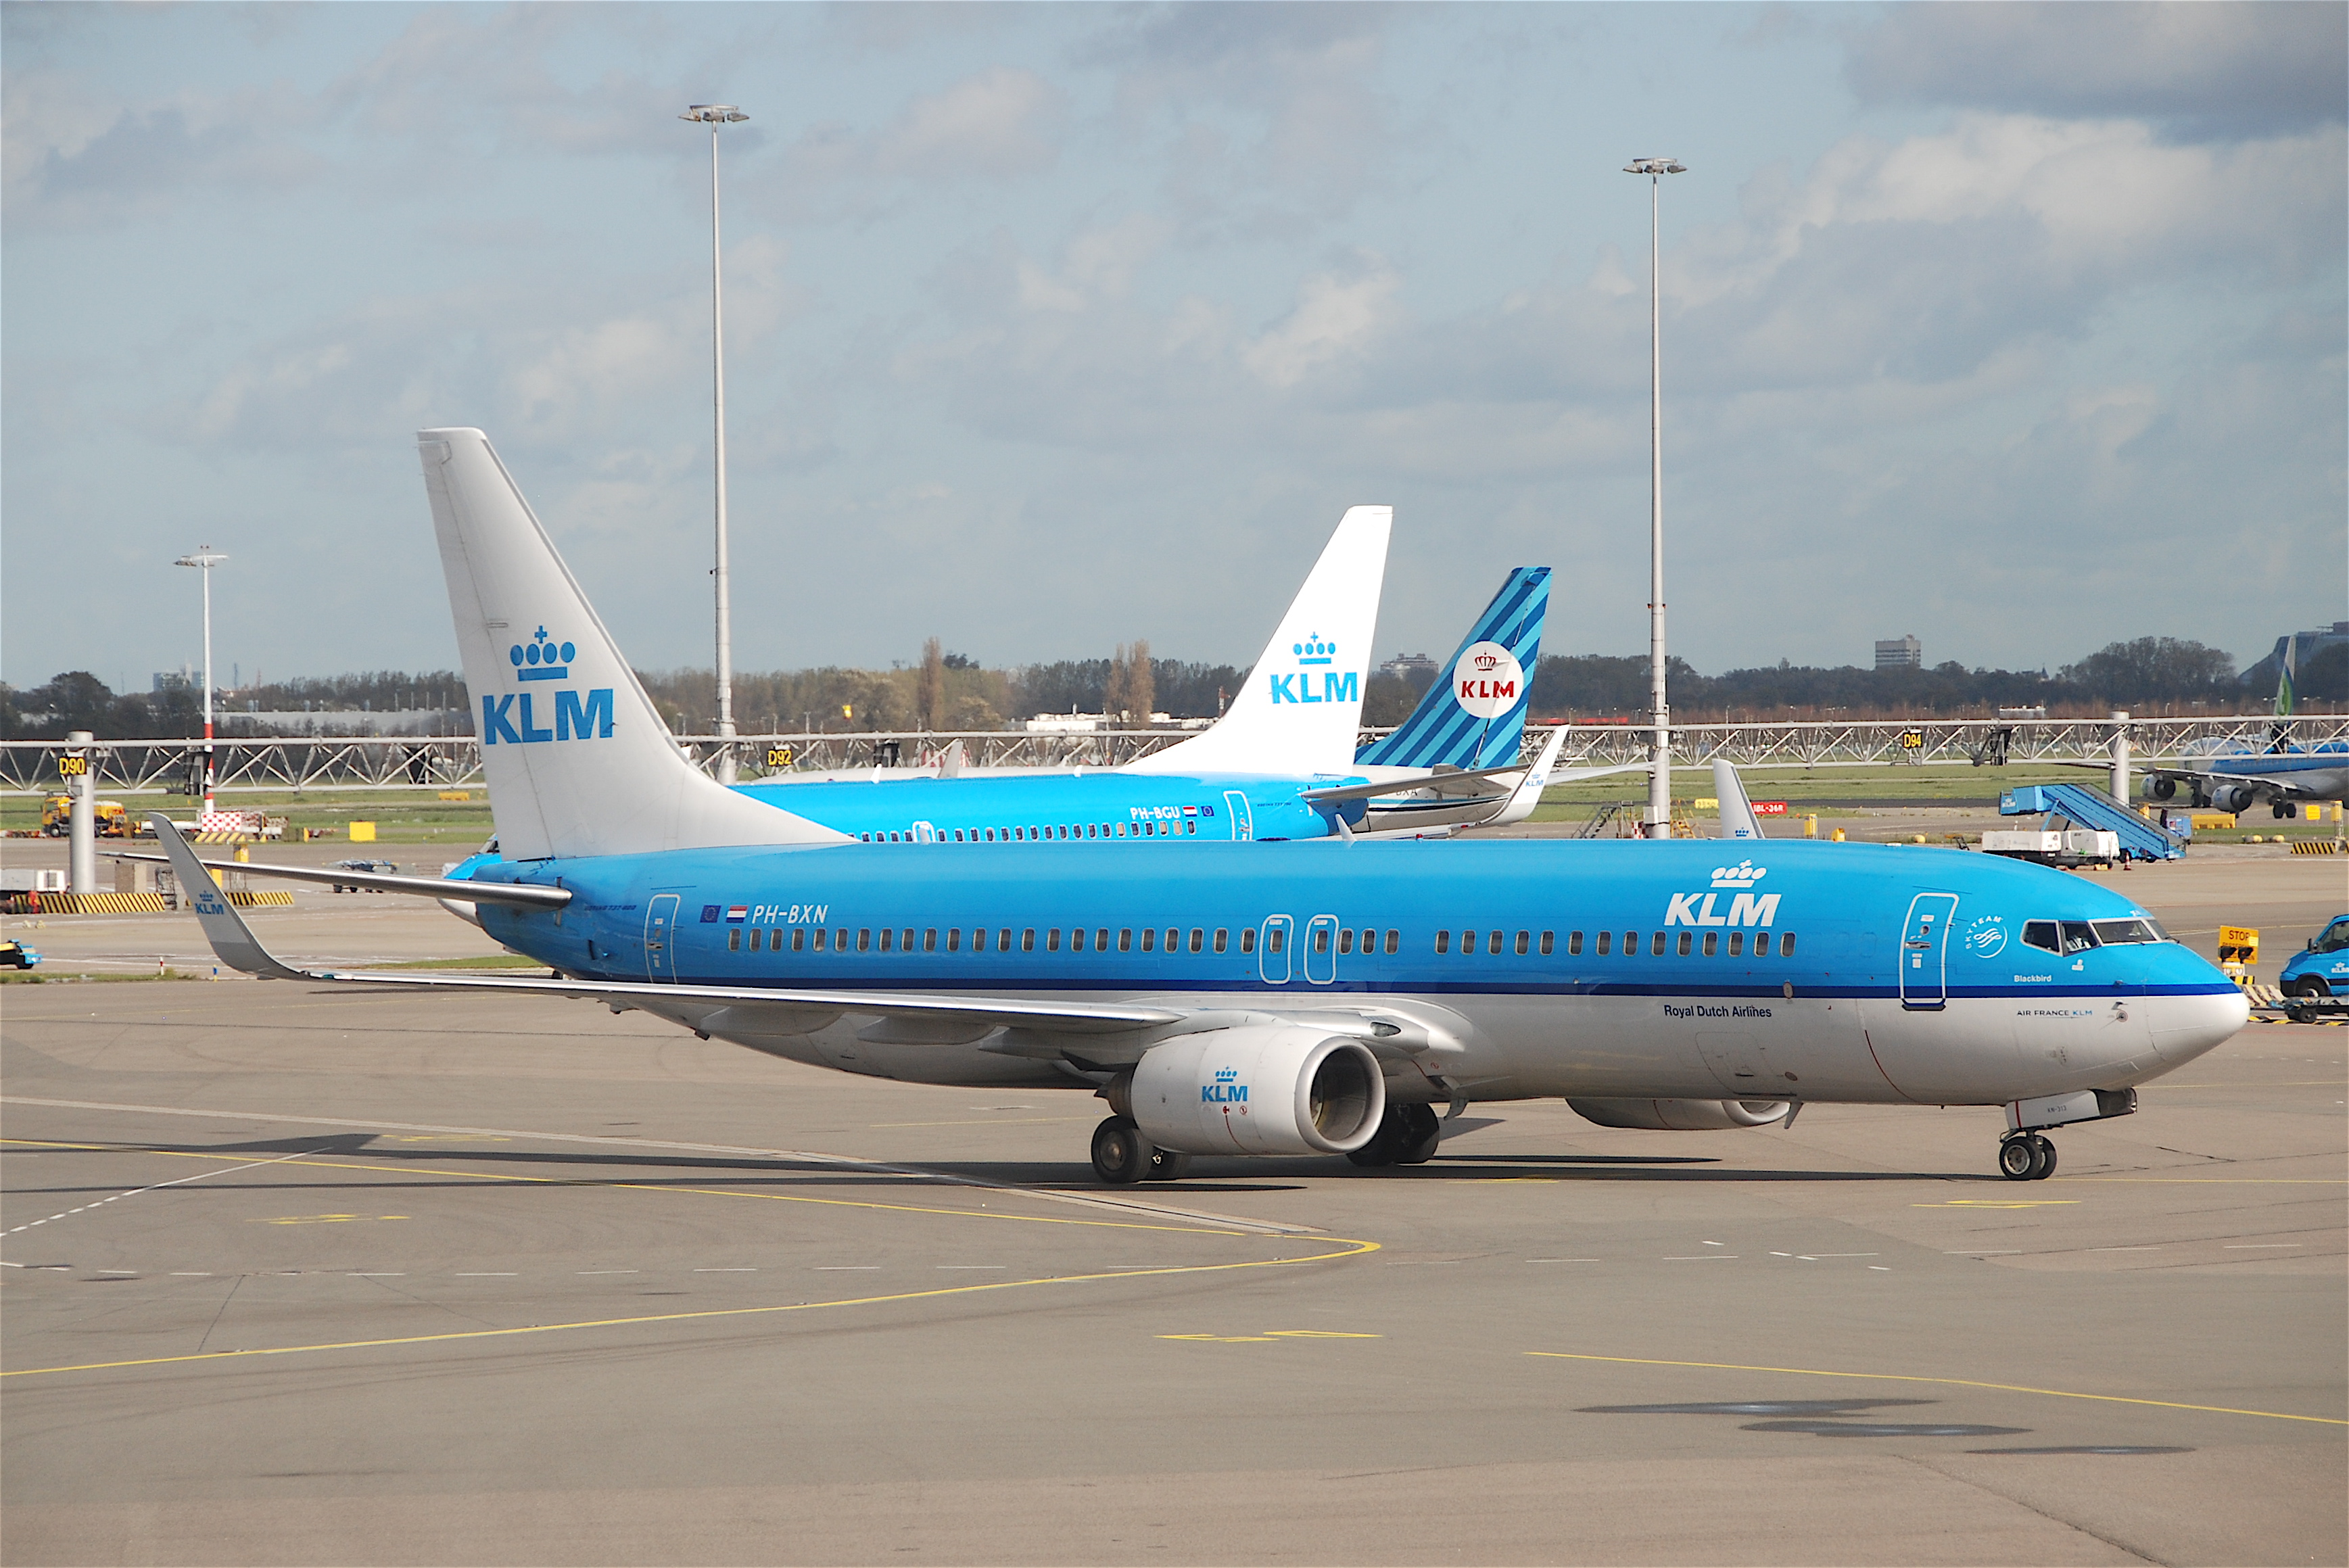 A KLM aircraft on the runway